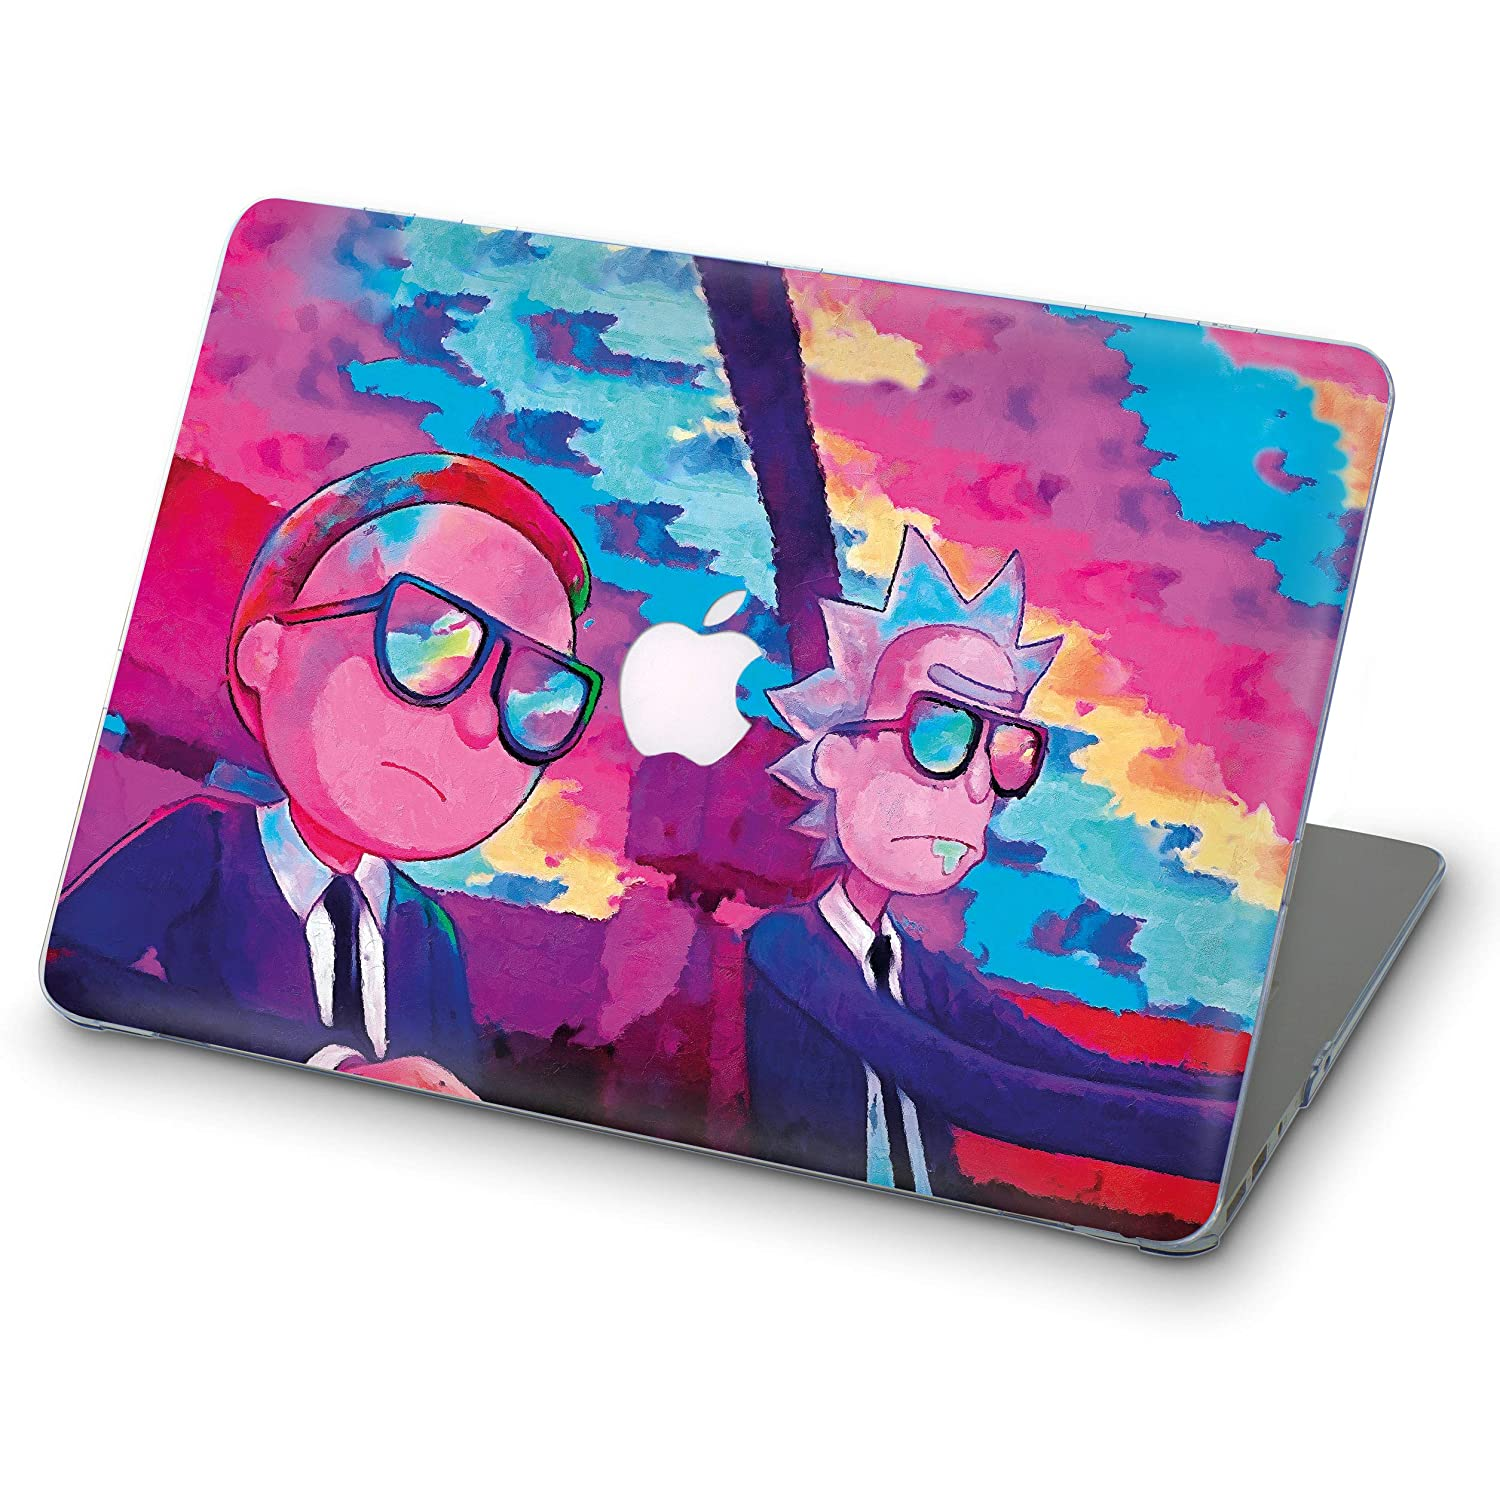 Rick and Morty Schwifty Cover Case For Macbook Pro 13 2017 Retina Air 11 12 15